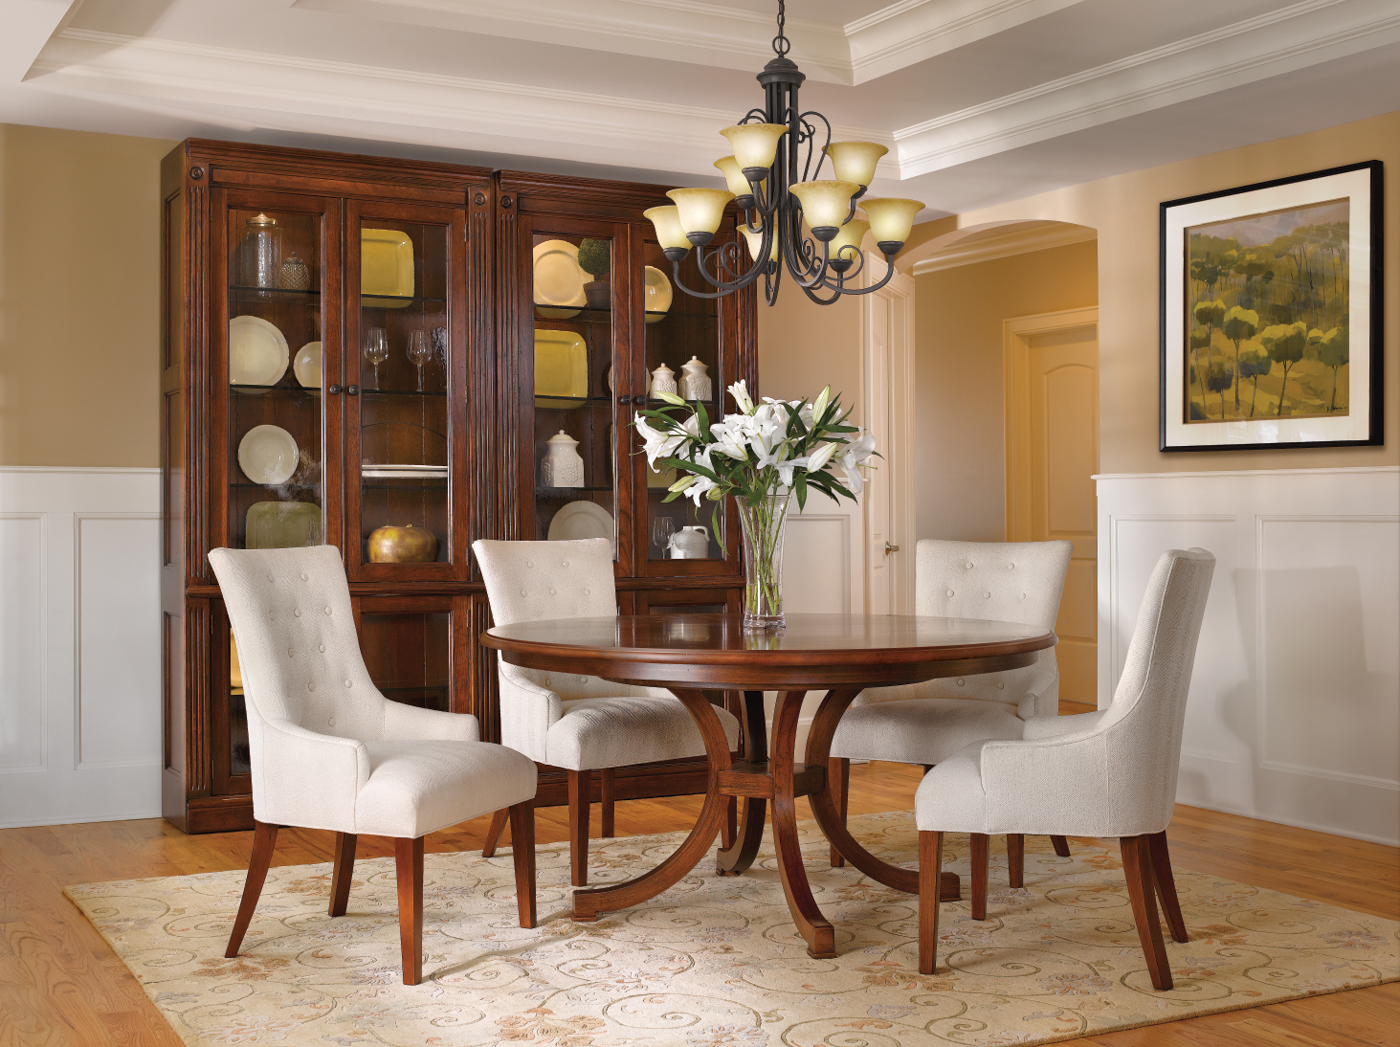 Dining Room Furniture Store Roanoke Reid S Fine Furnishings